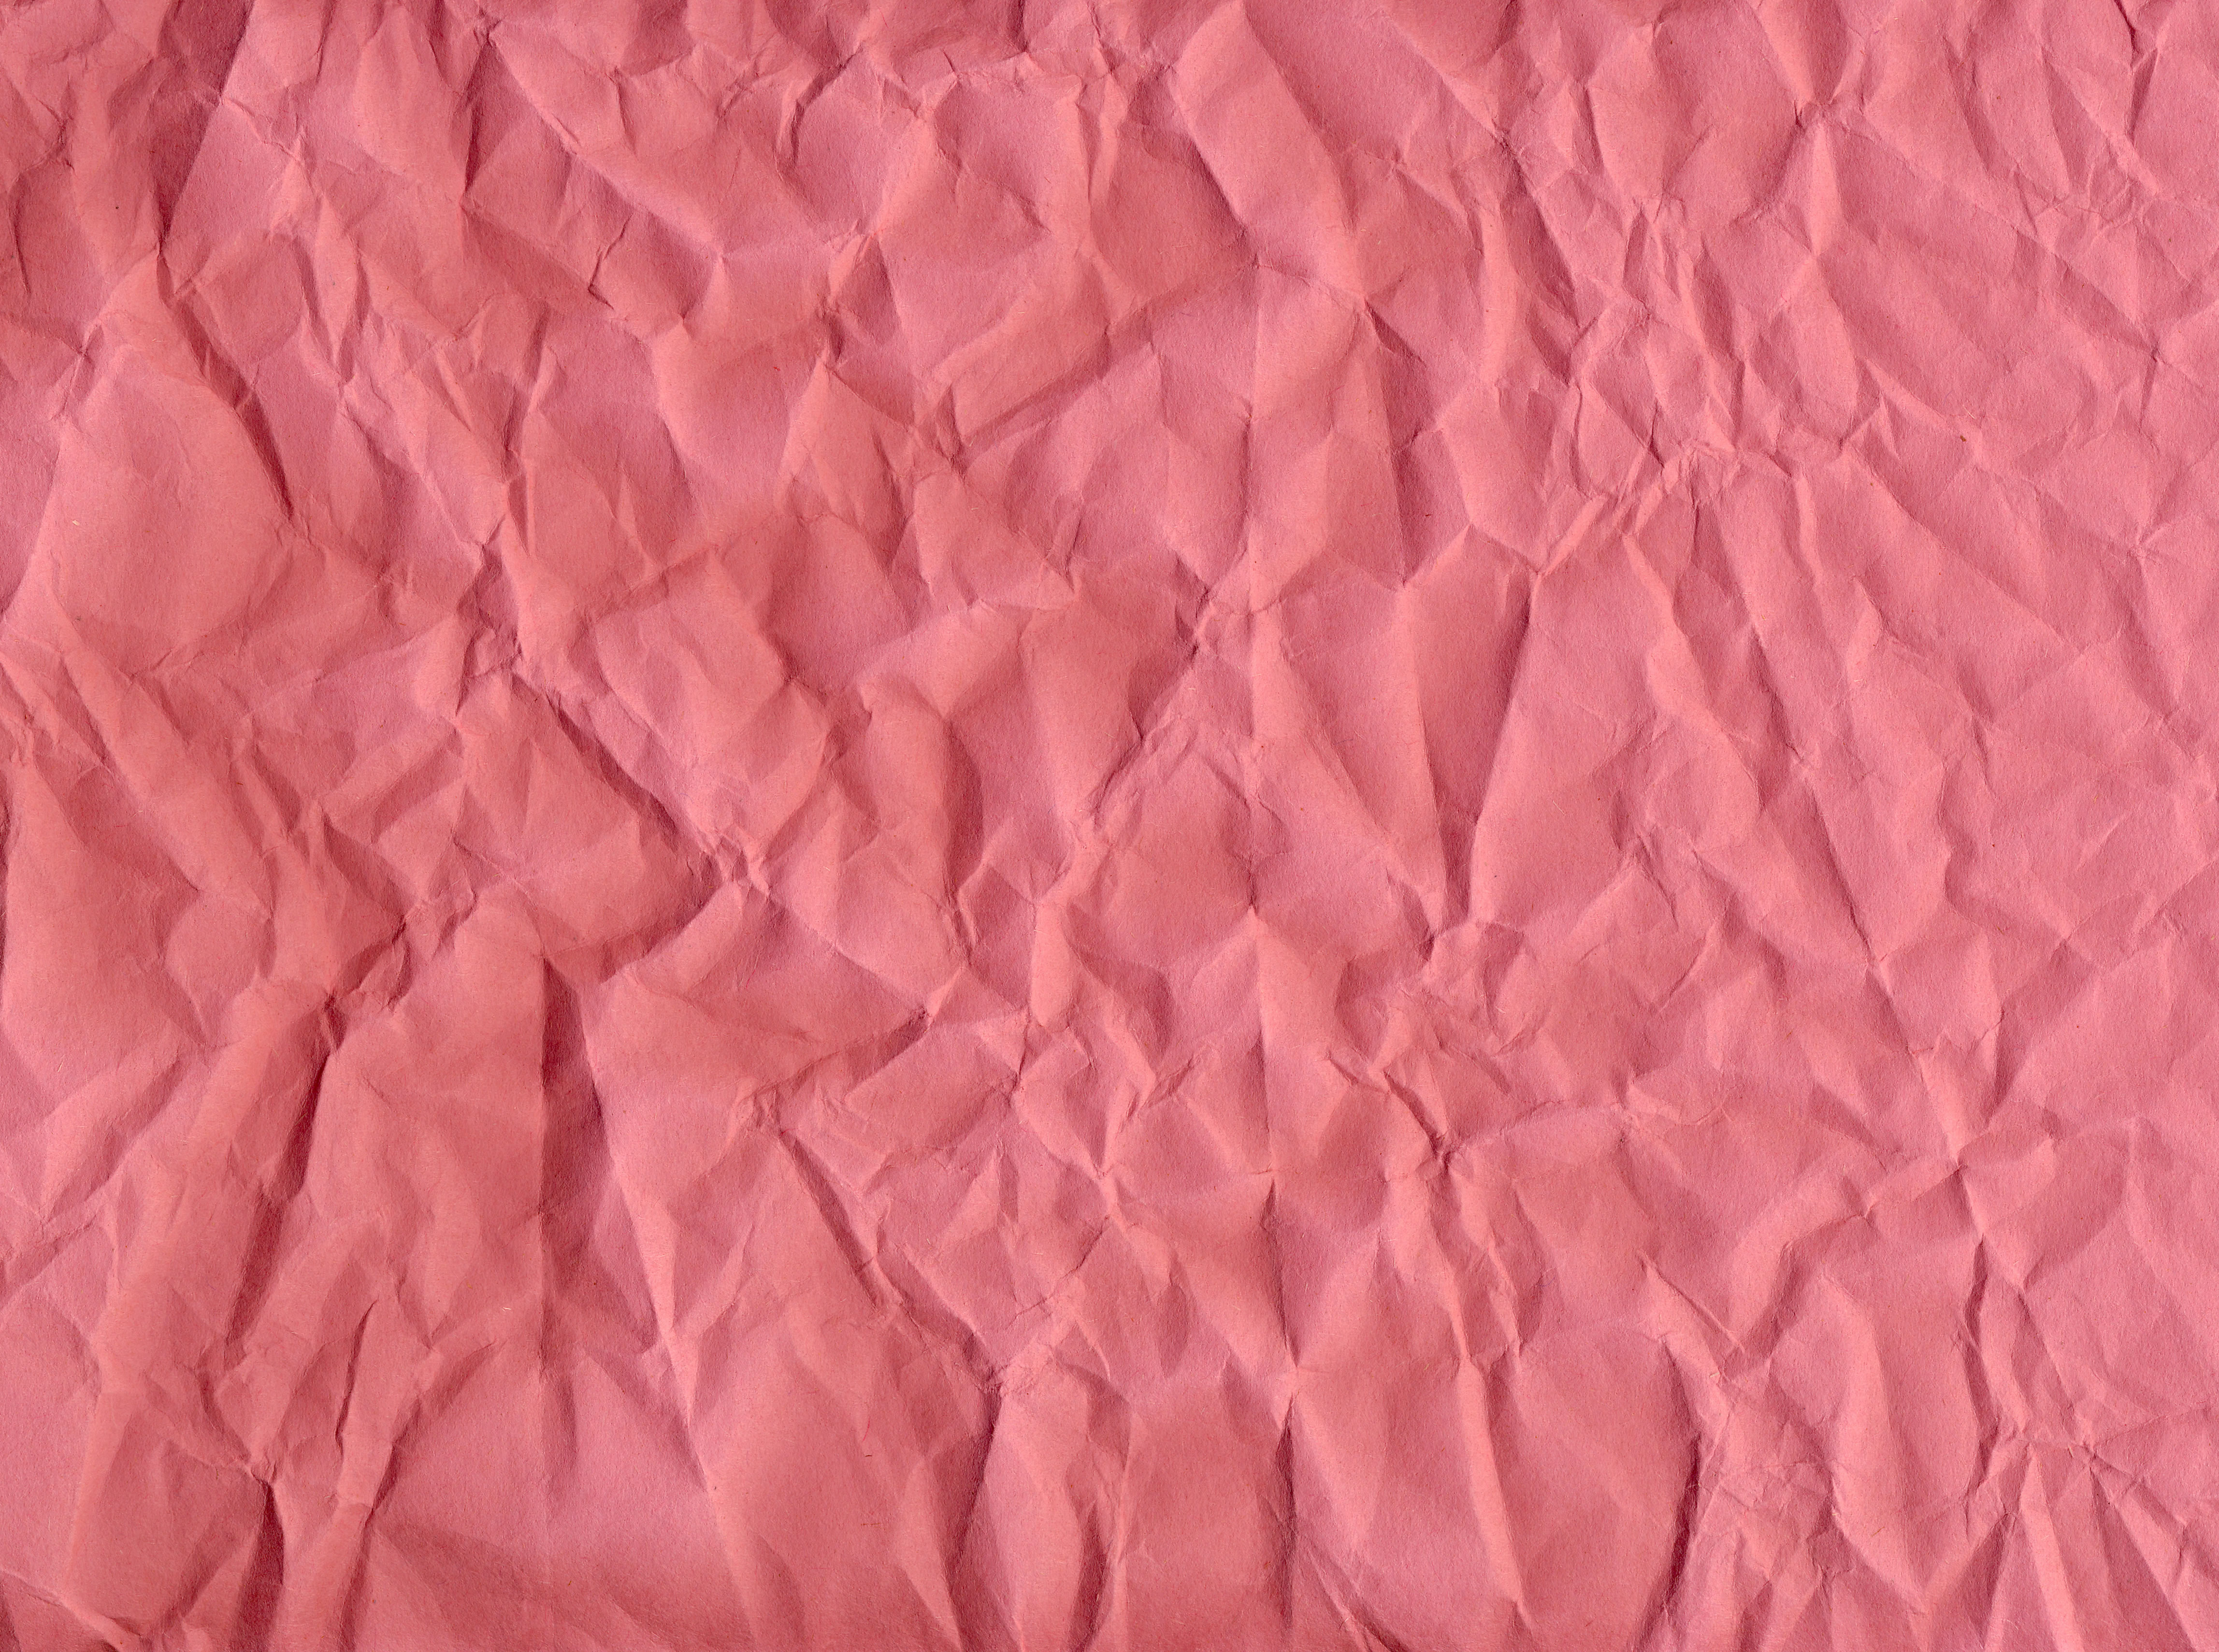 pink creased paper texture background